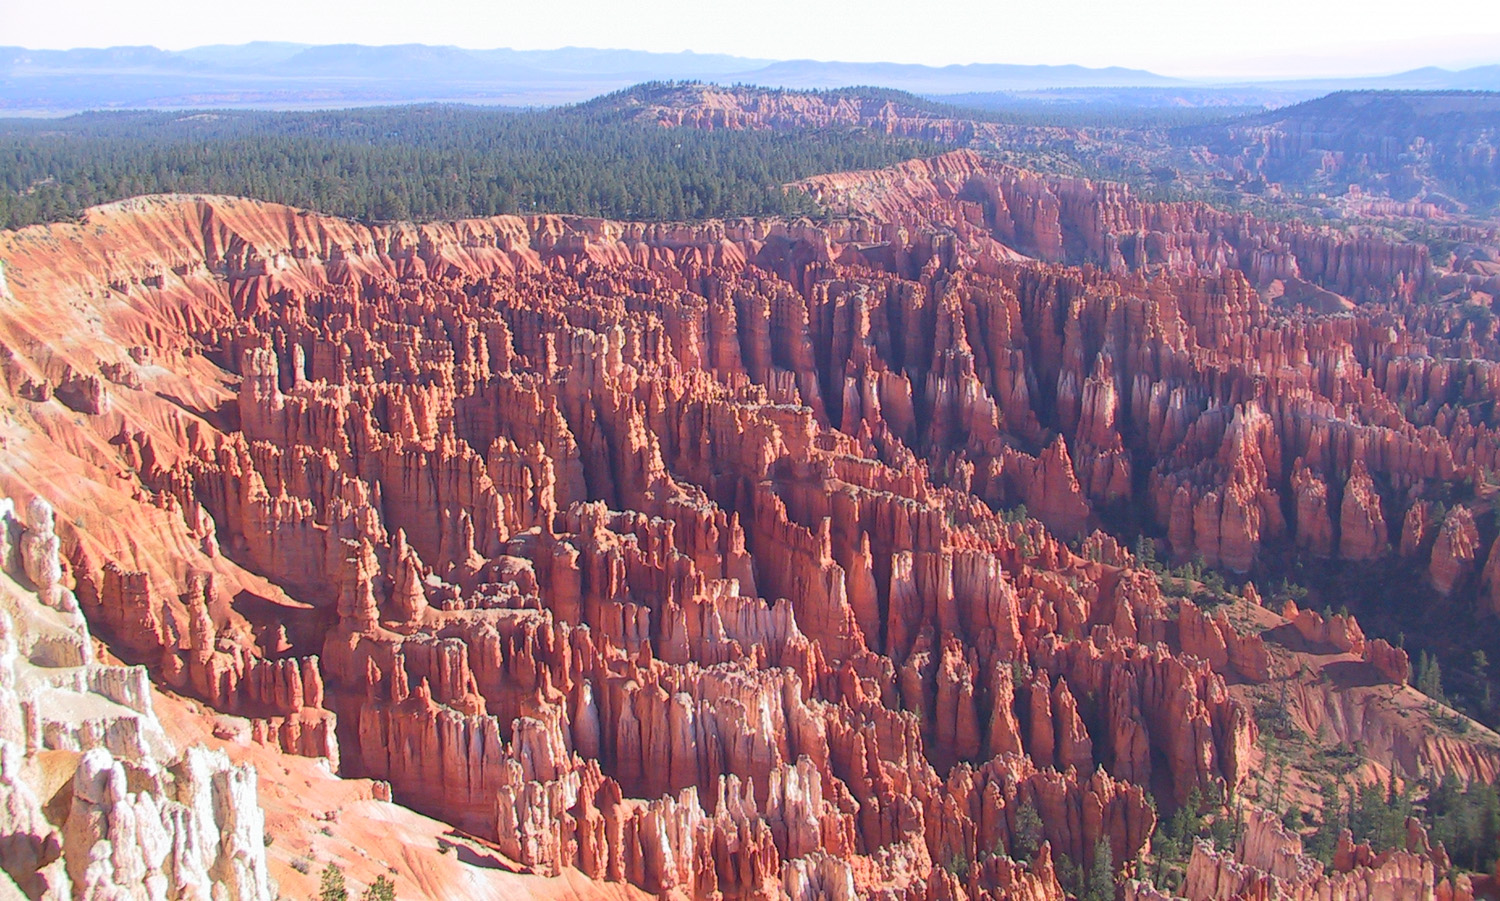 Bryce Canyon National Park Wikimedia Commons